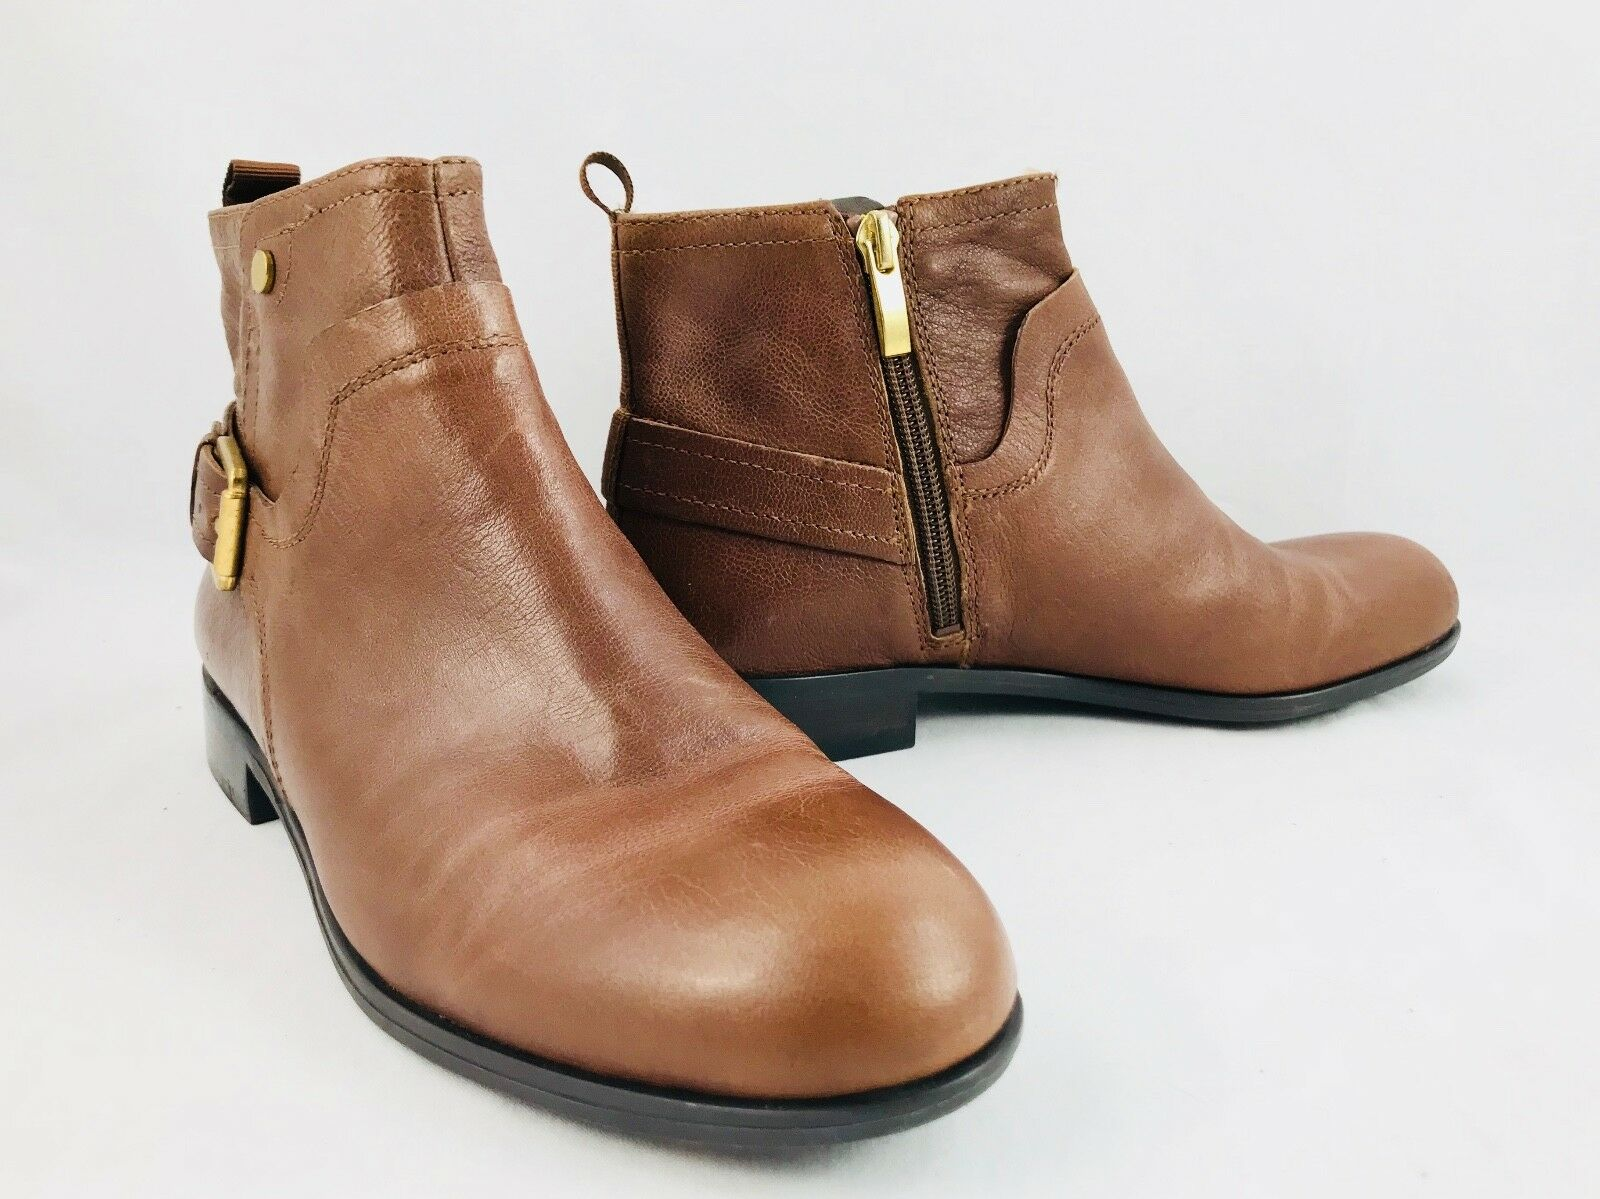 Franco Sarto Marta Womens Ankle Boots Rustic Brown Size 5.5